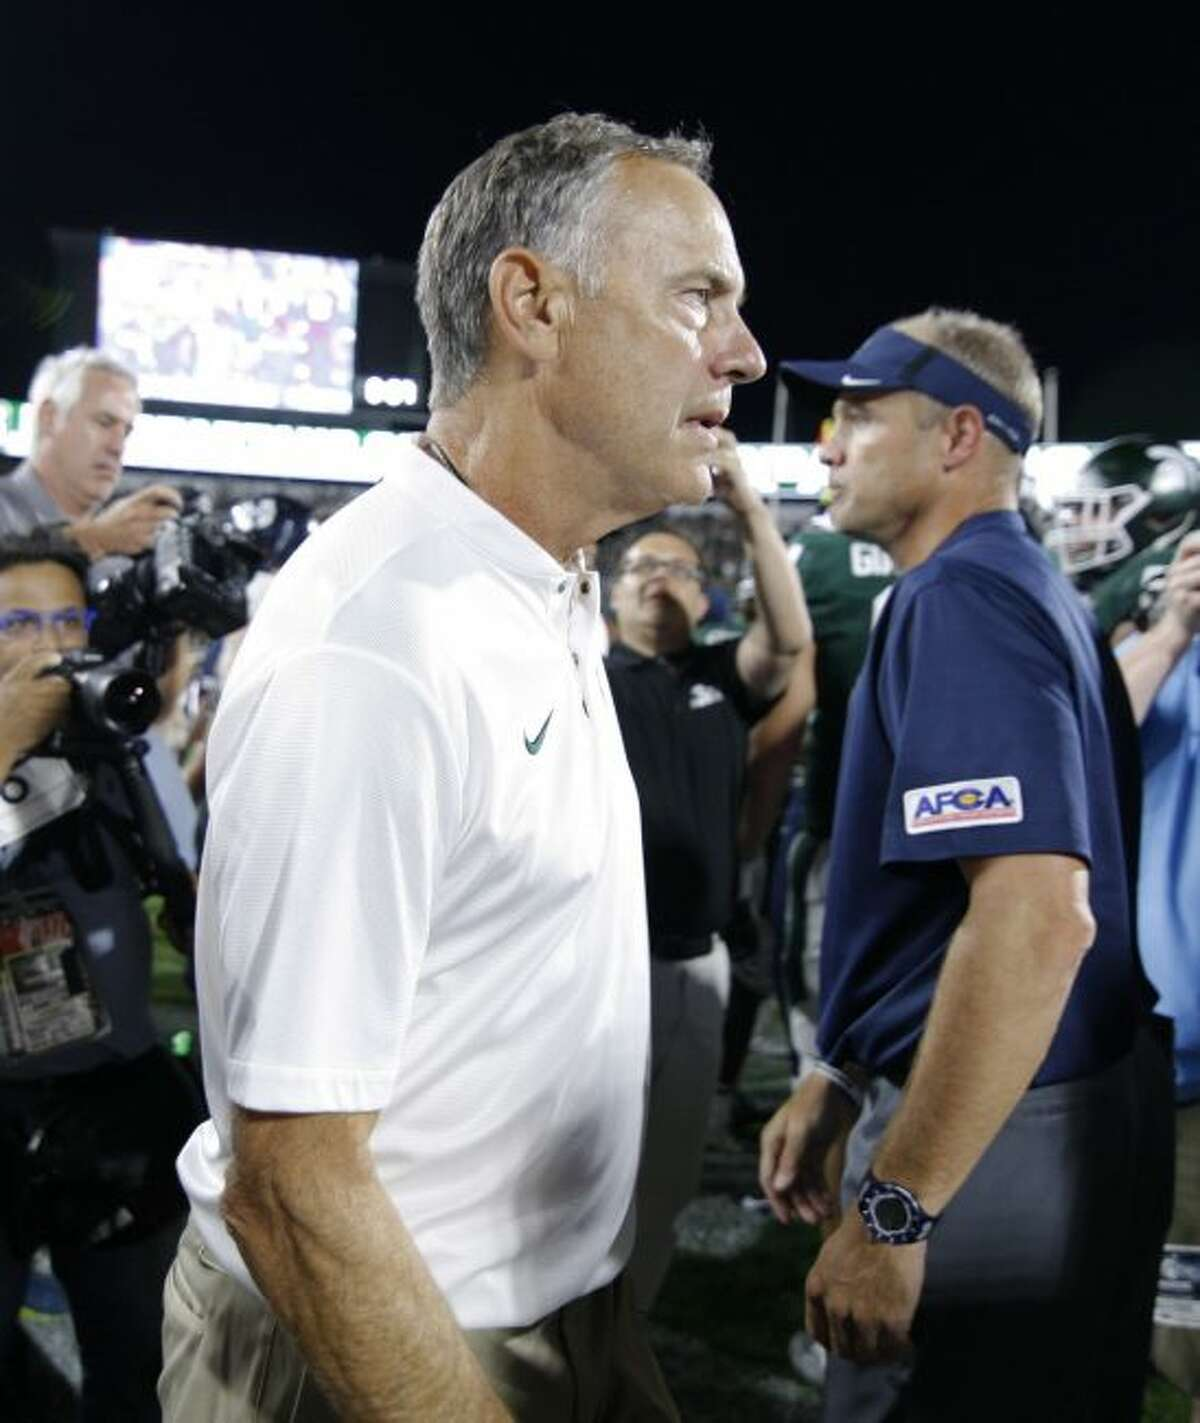 Michigan State coach Mark Dantonio reacts following a win over Utah State in an NCAA college football game, Friday, Aug. 31, 2018, in East Lansing, Mich. (AP Photo/Al Goldis)